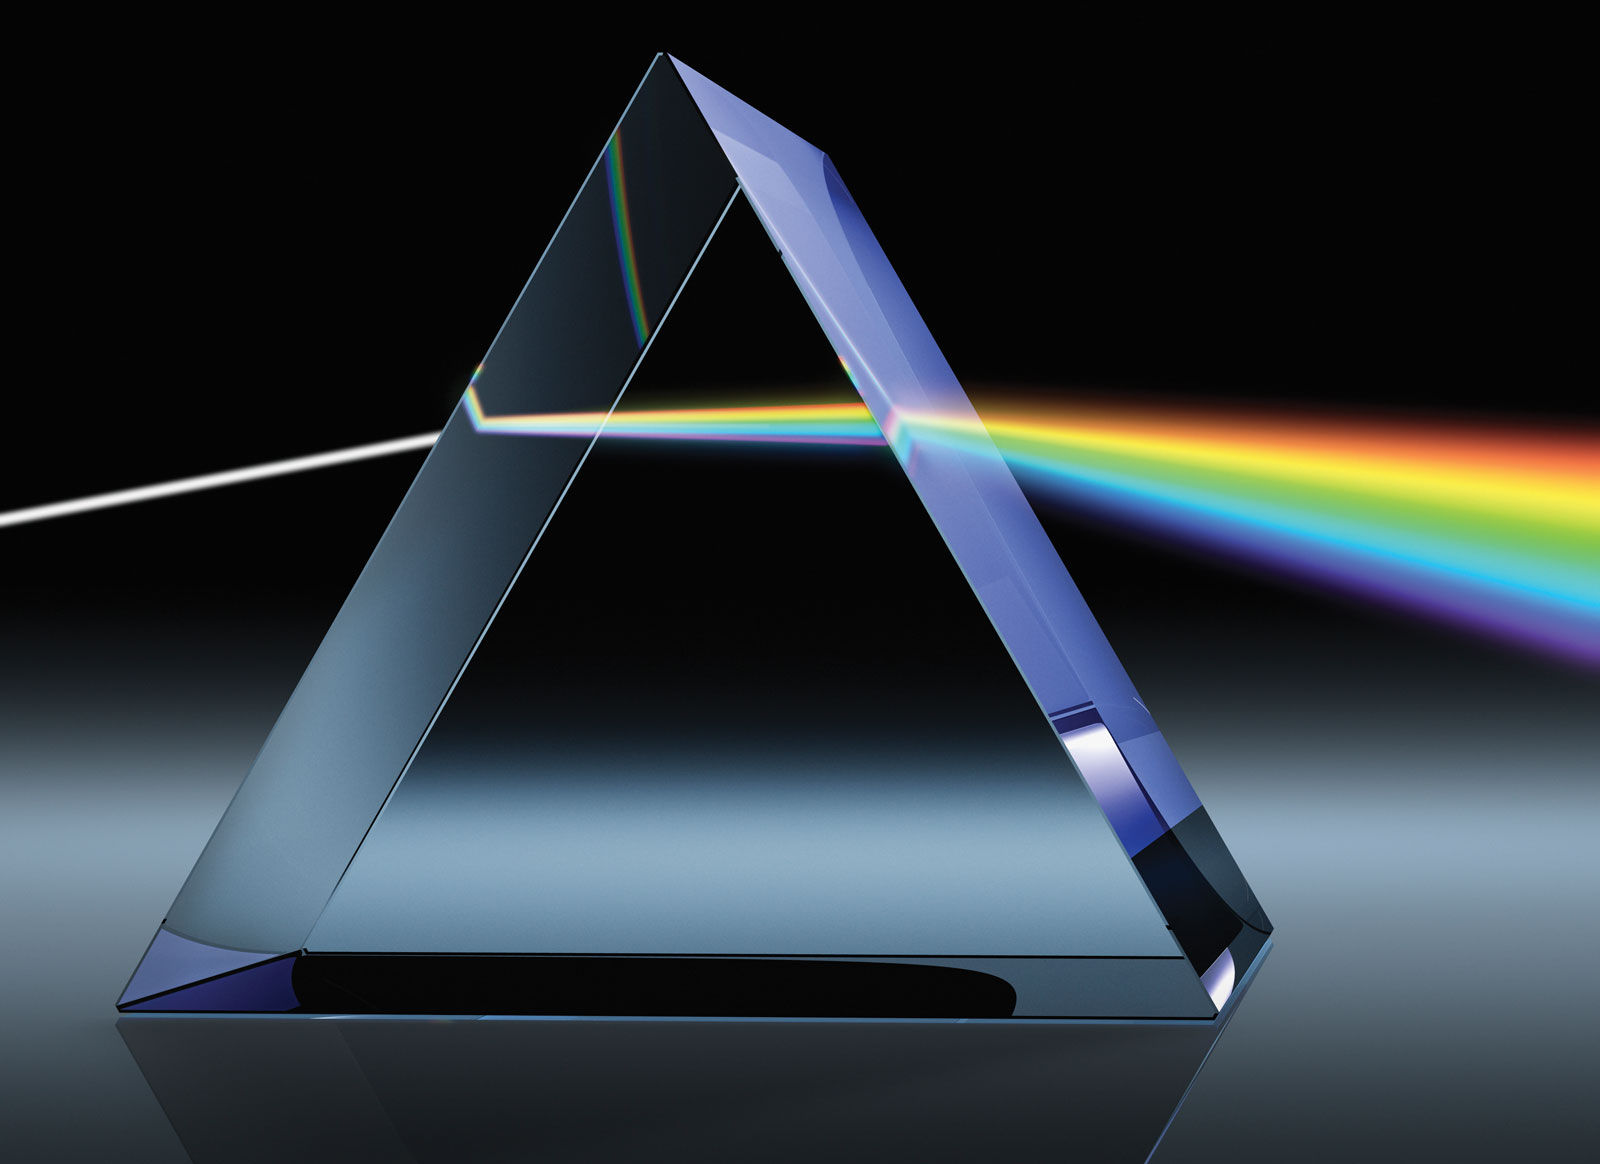 prism optical illusions wiki fandom powered by wikia